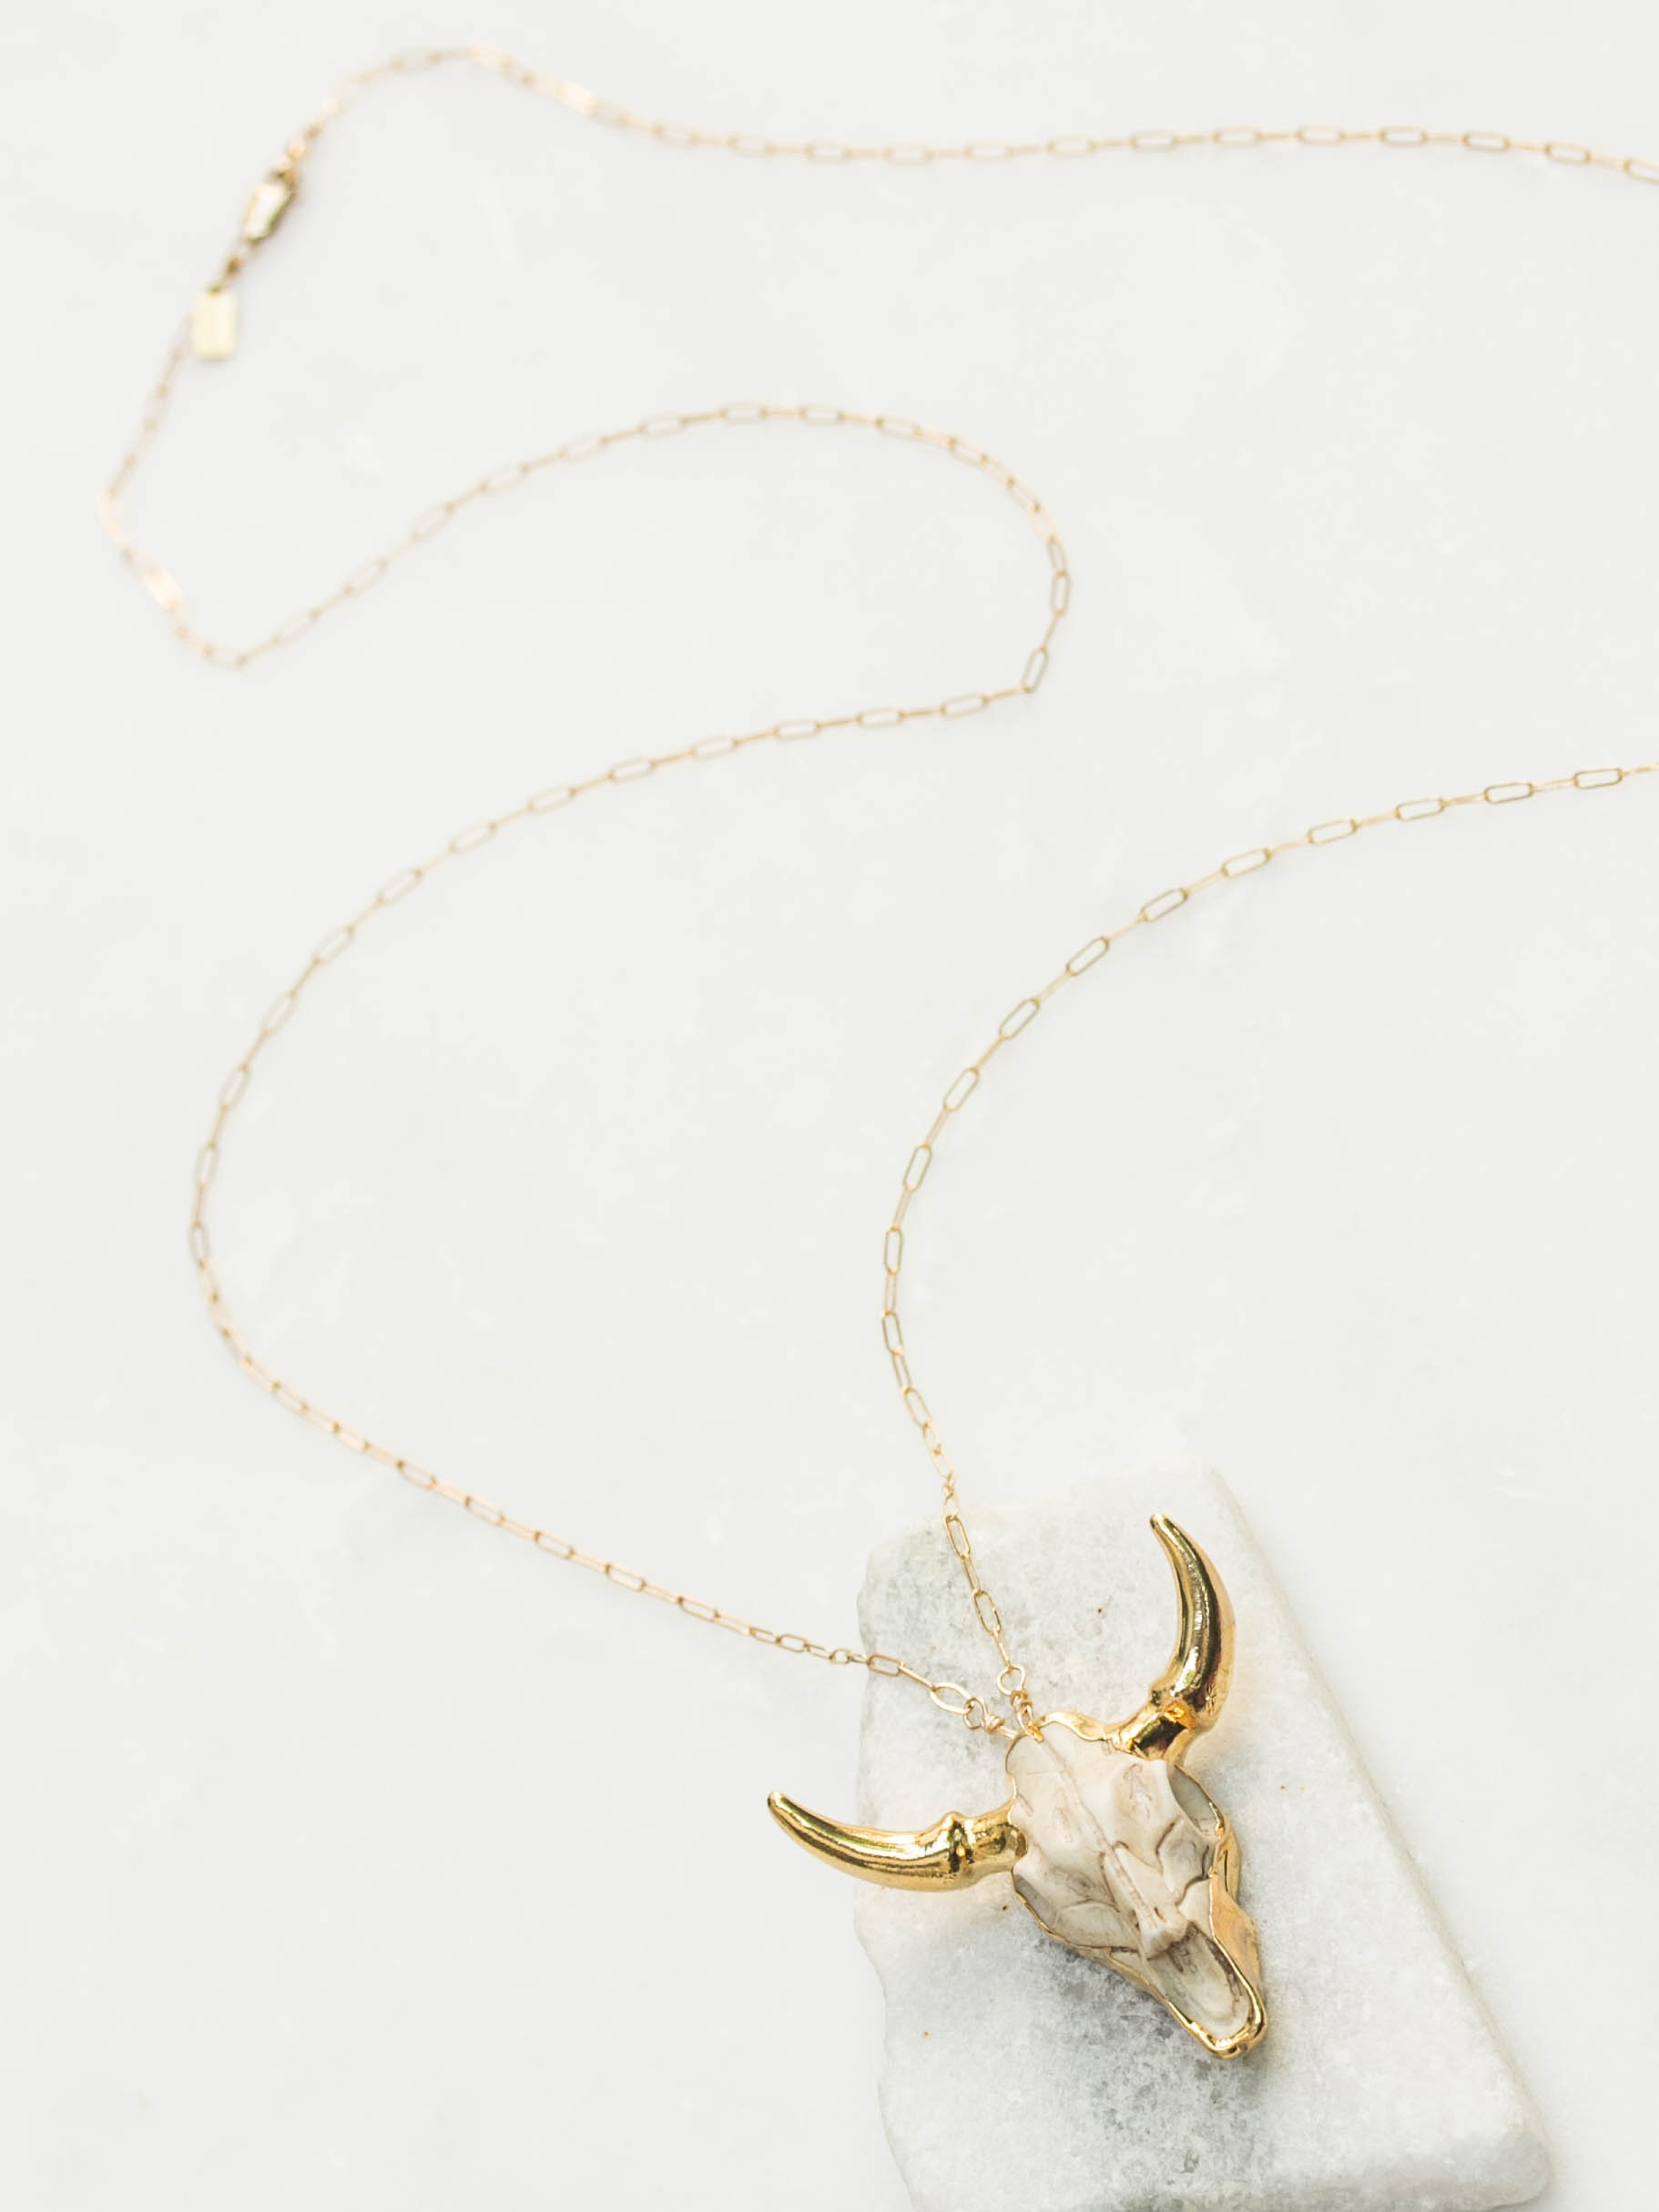 Neutral resin longhorn necklace  $110